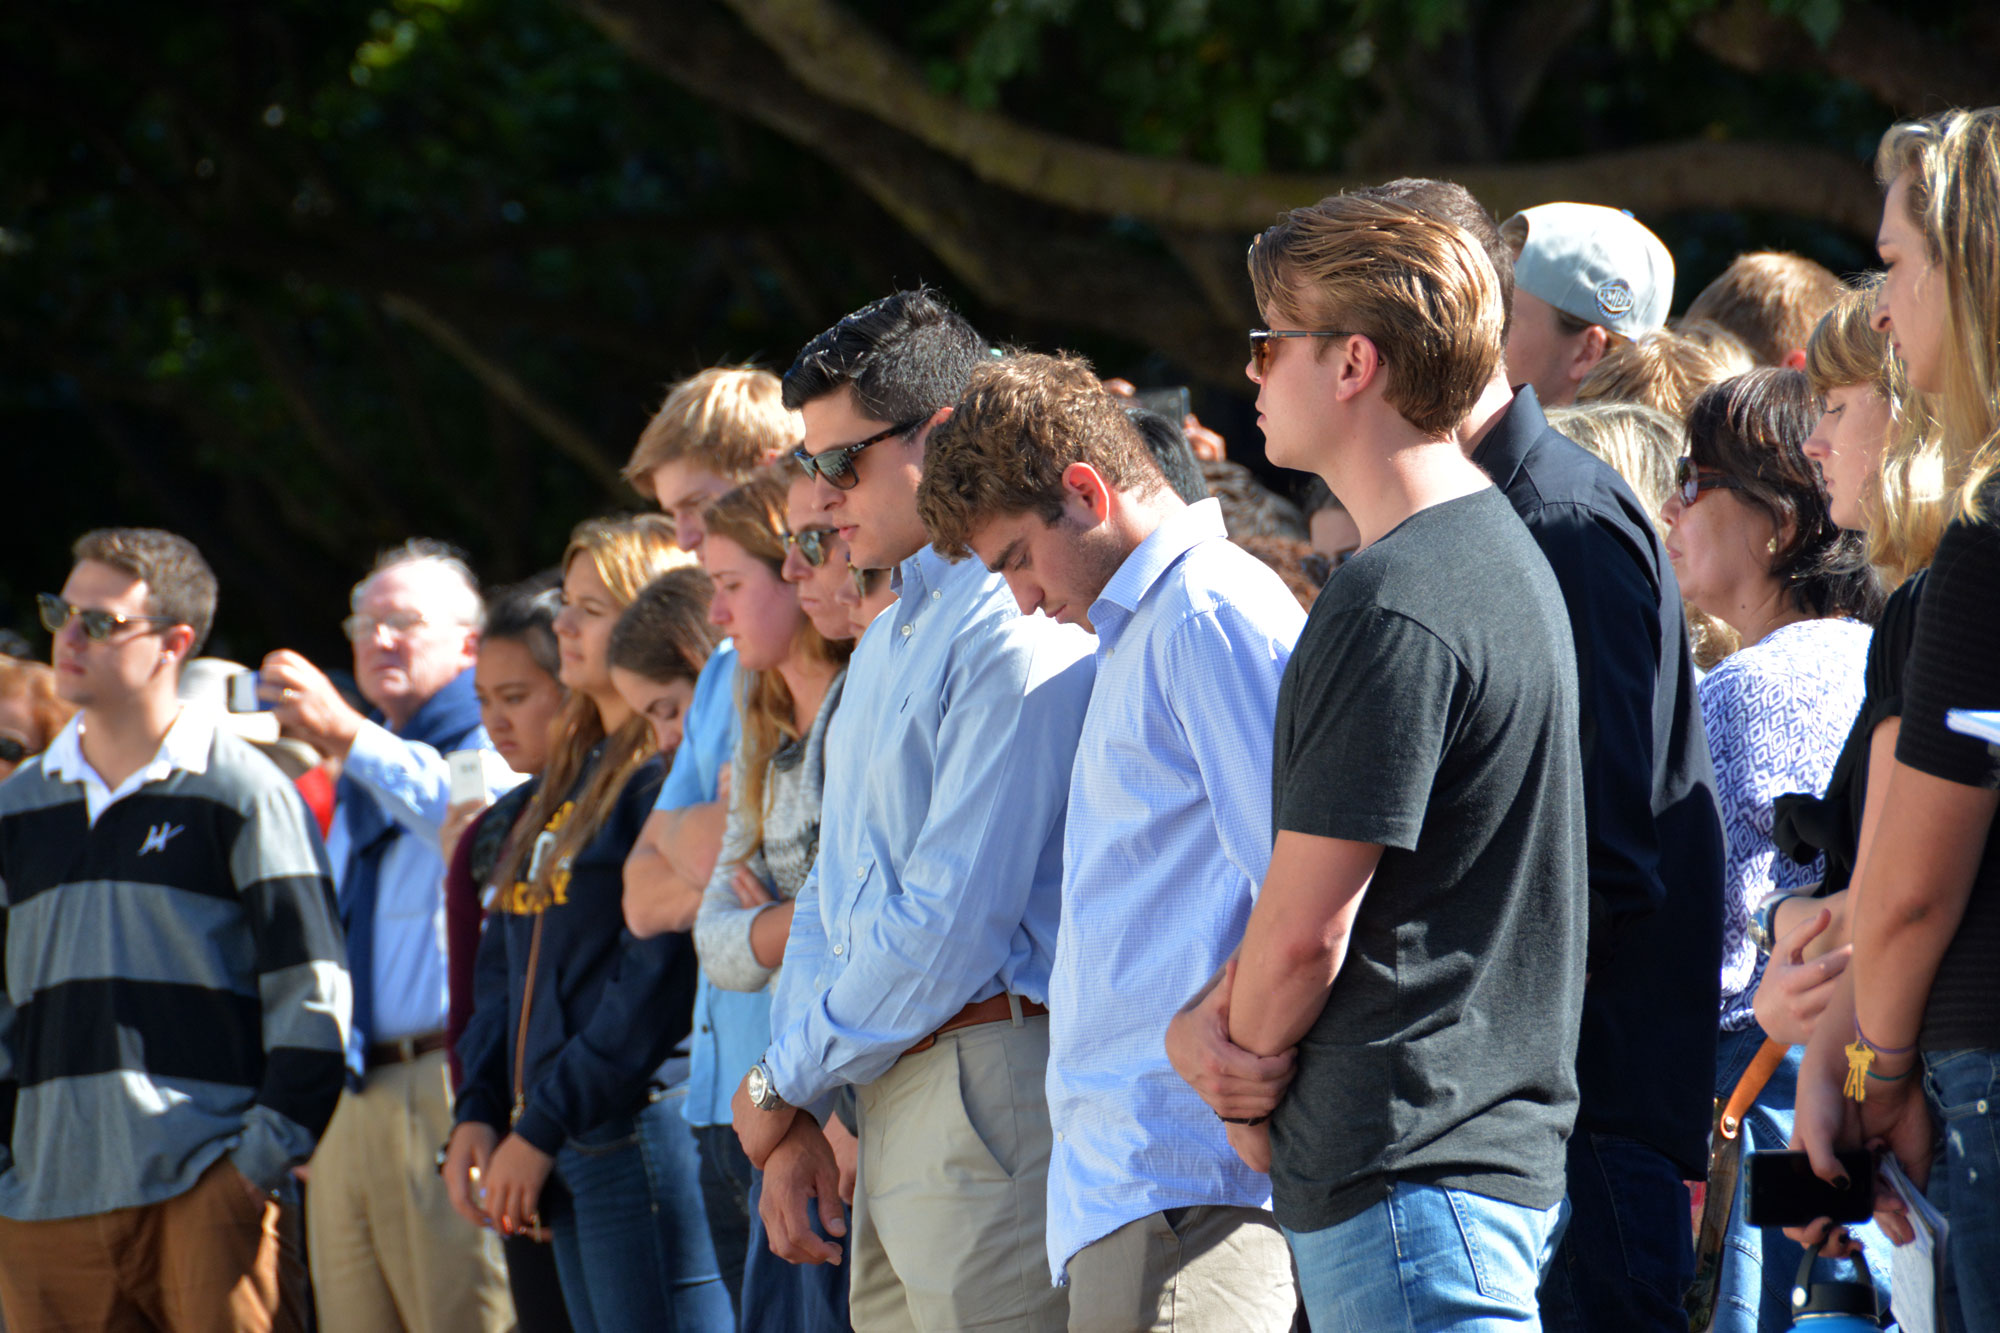 Photo of members of the Cal community at a memorial service, many with their heads bowed down.